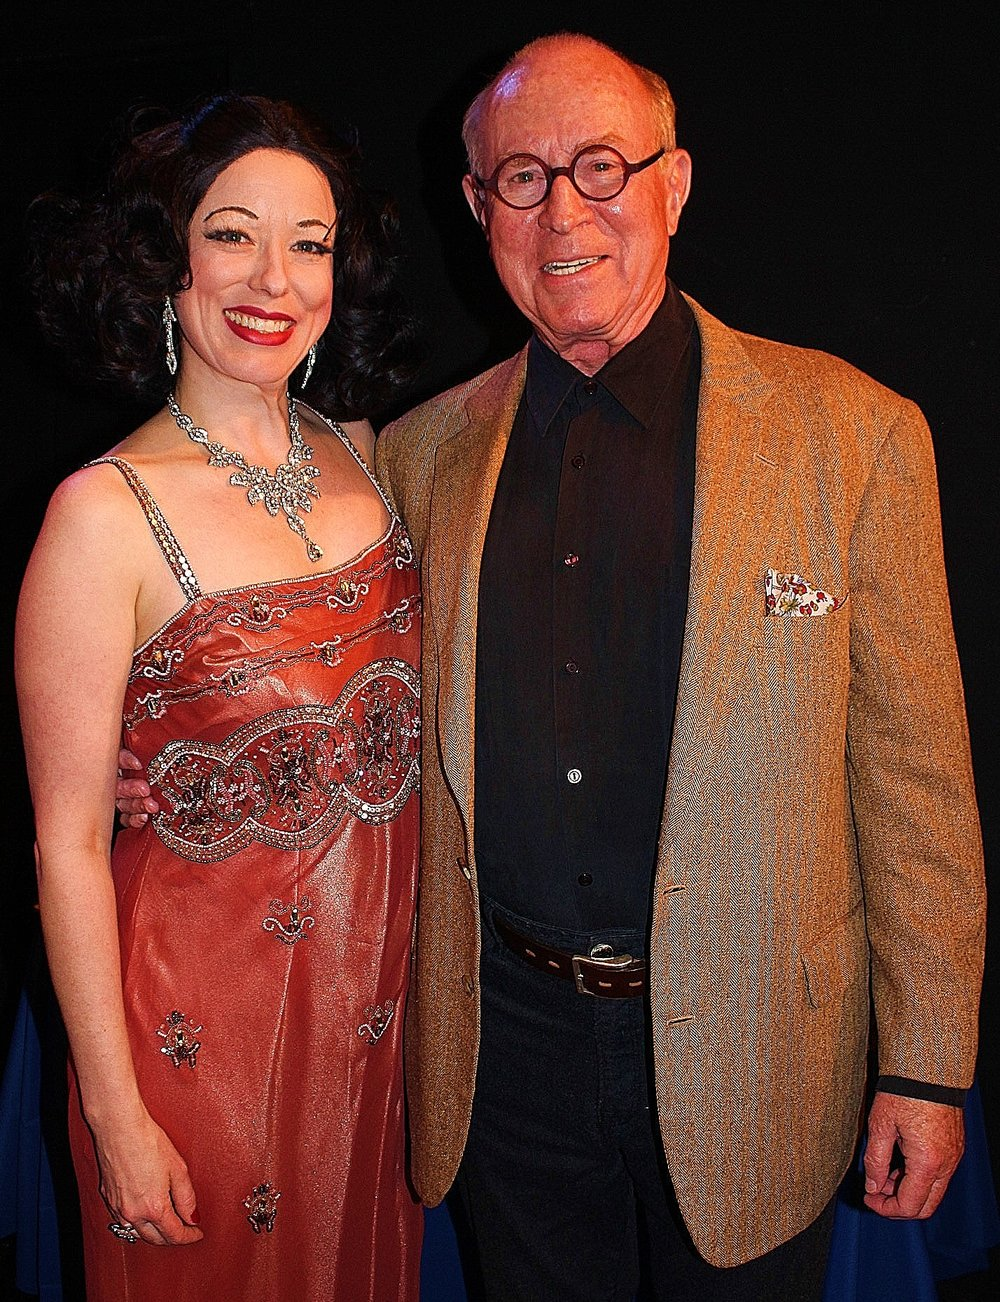 HEDY Press Pic 14 - Heather Massie as Hedy Lamarr with Richard Rhodes, Hedy's biographer - Hedy's Folly: The Life and Breakthrough Inventions of Hedy Lamarr The Most Beautiful Woman in the World